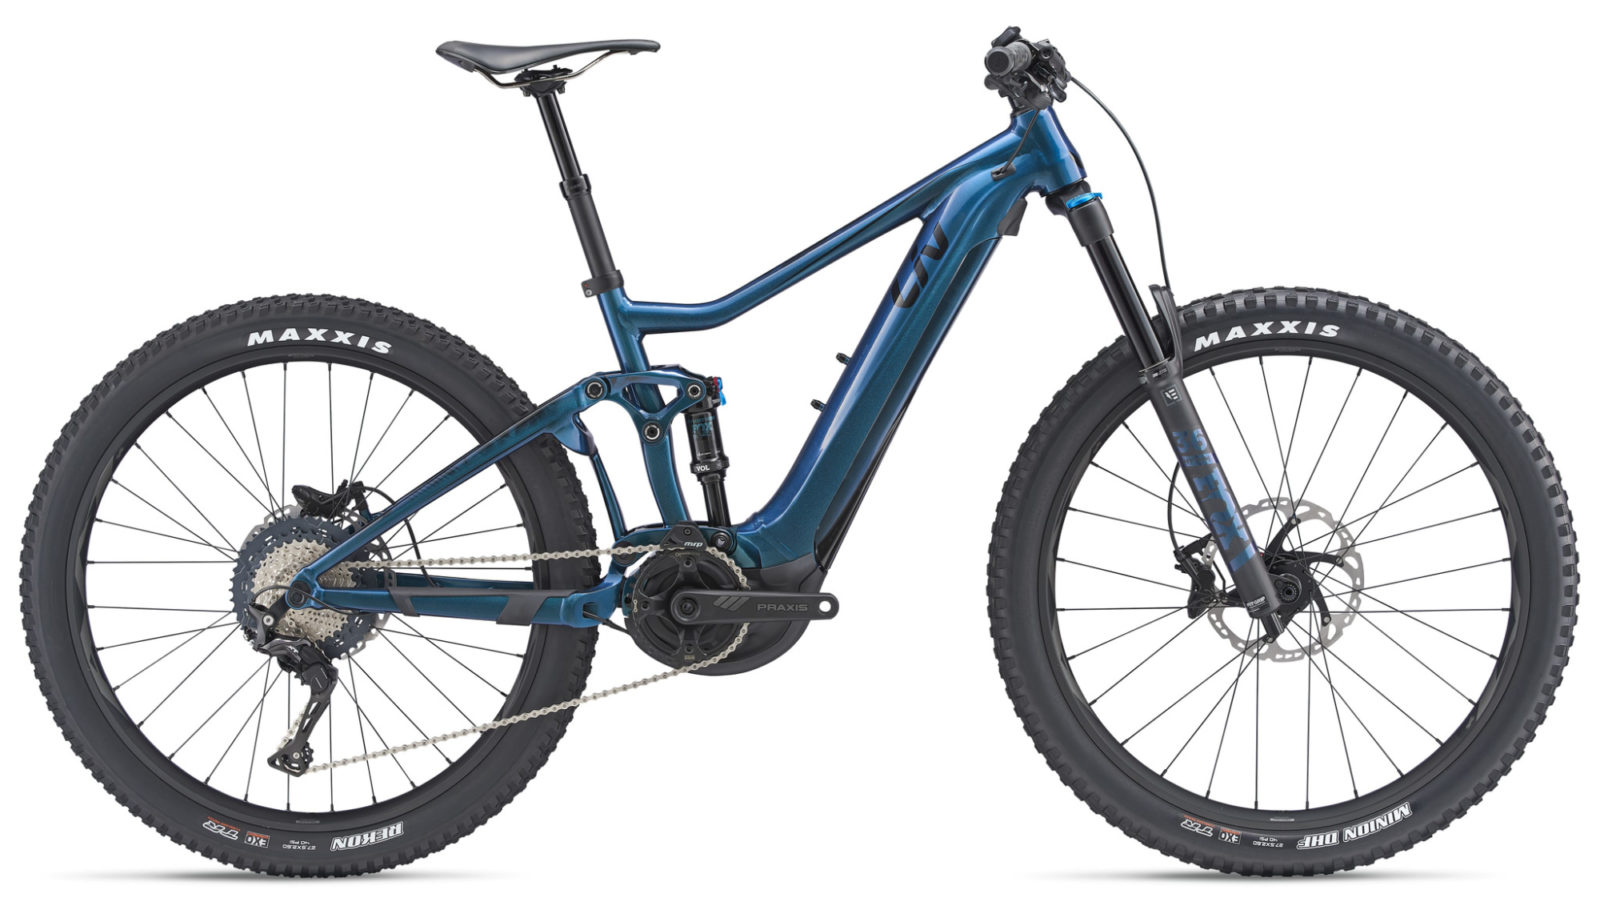 LIV MTB Hybrid Intrigue E+ 1 Pro 2019